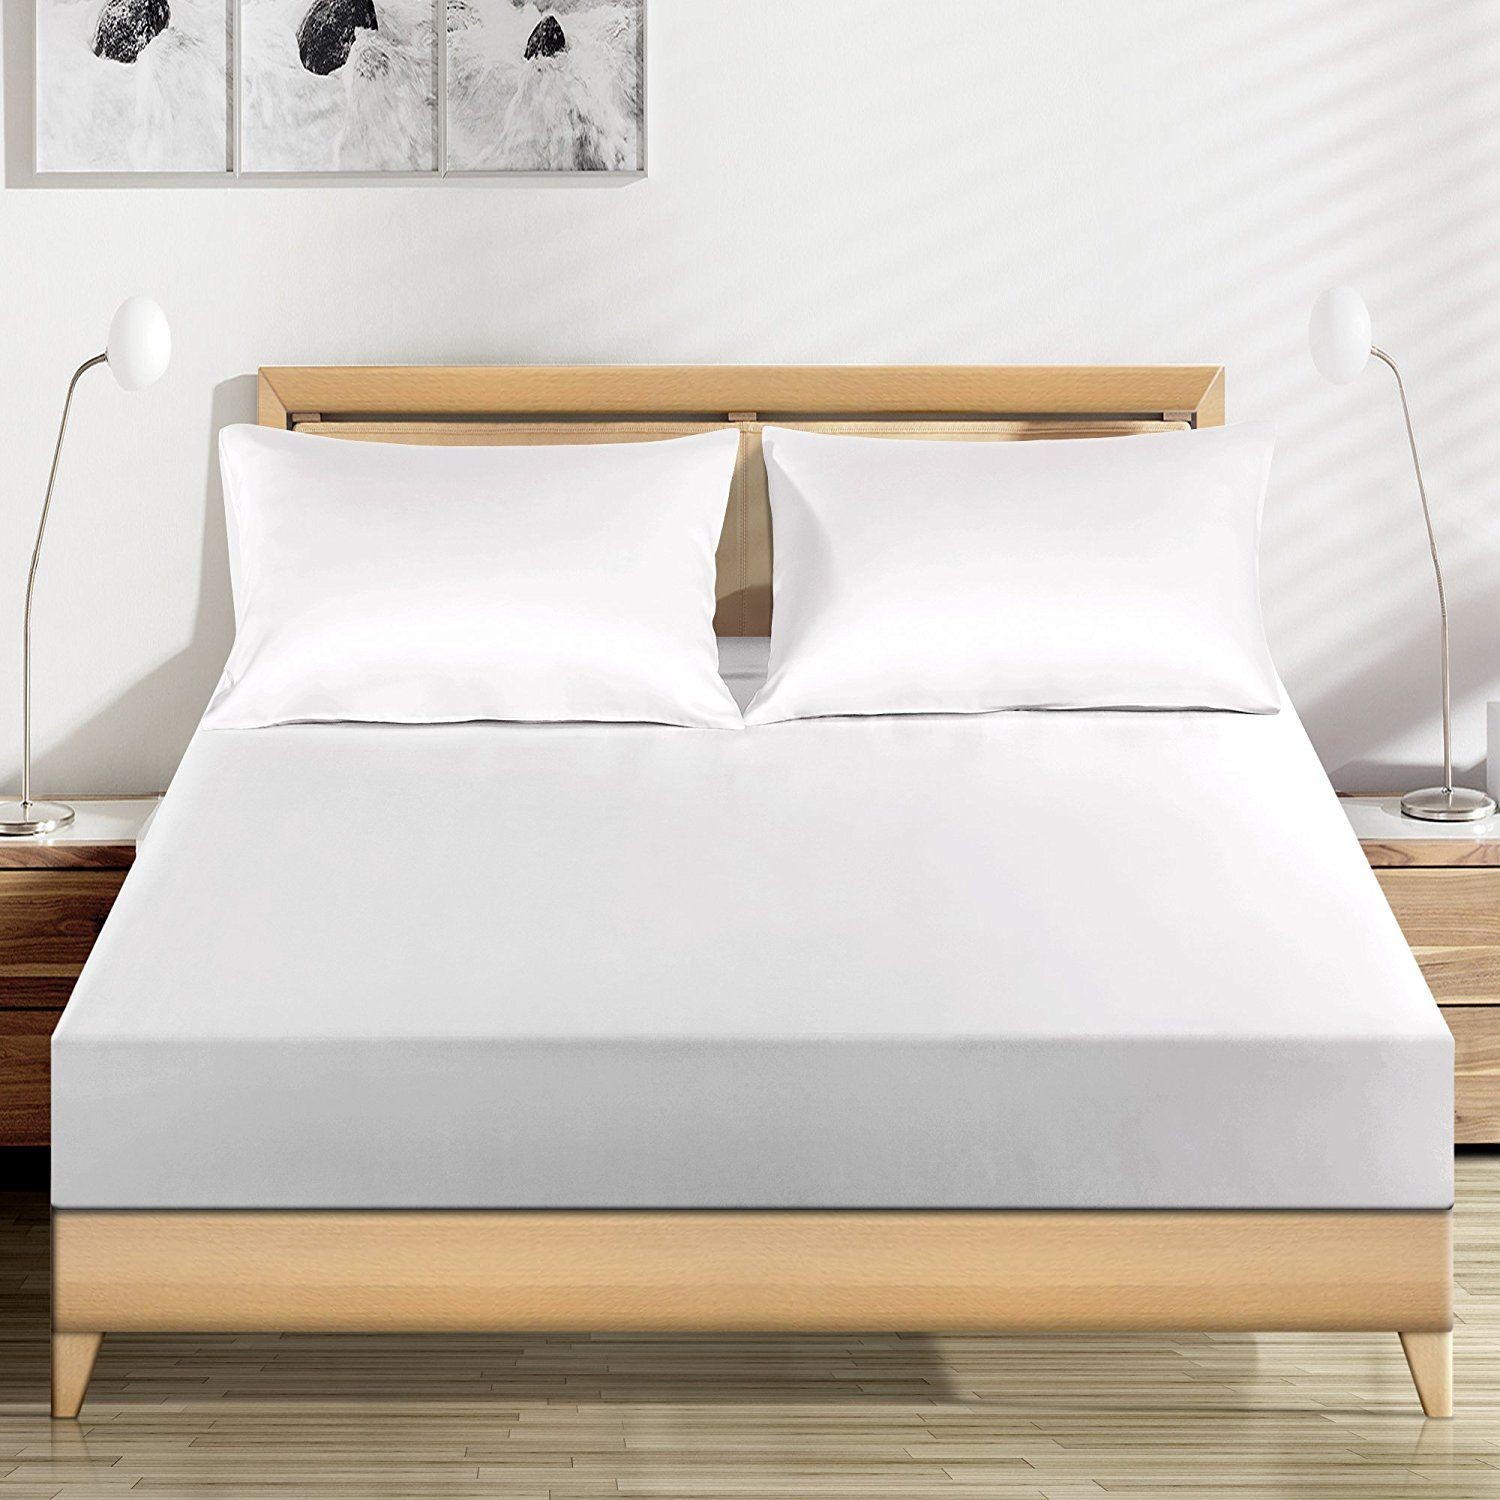 LUXUER Silk Fitted Sheet/ Mattress Cover/Protector 1PC